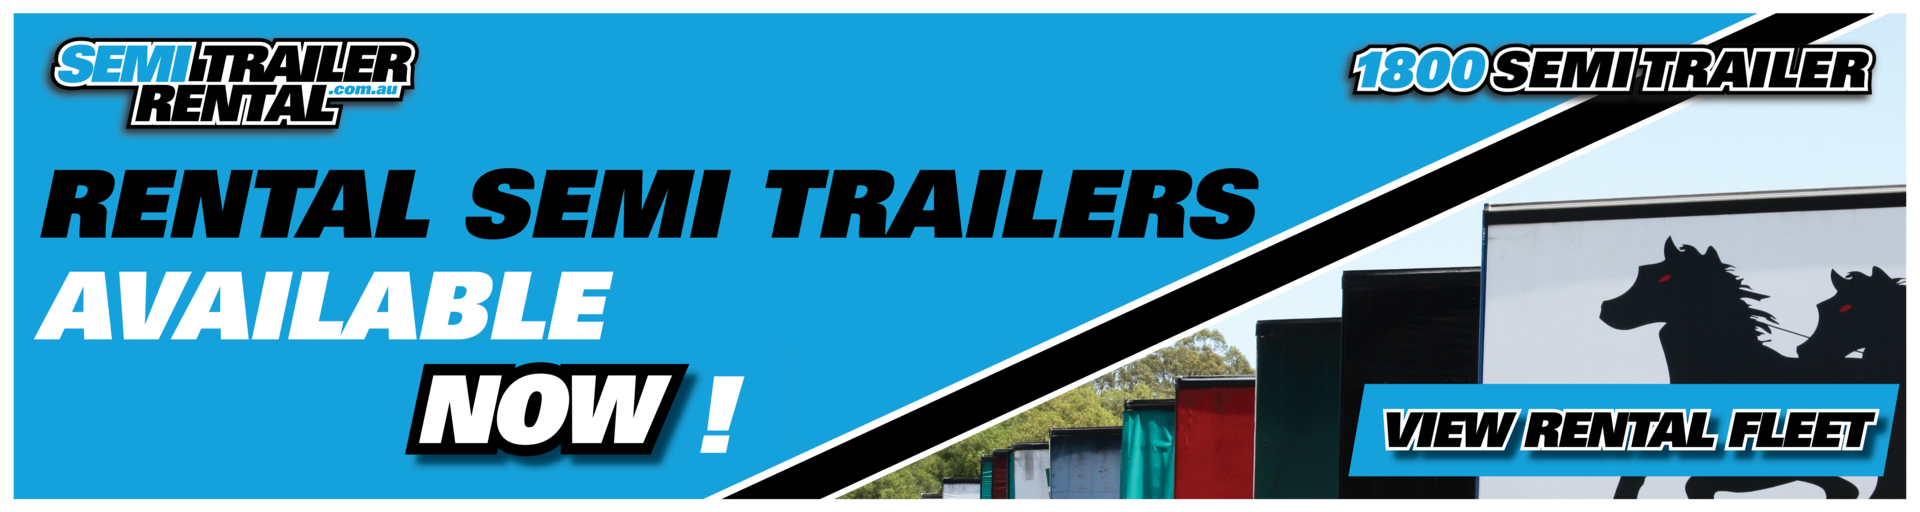 Rental Semi Trailers Available Now!